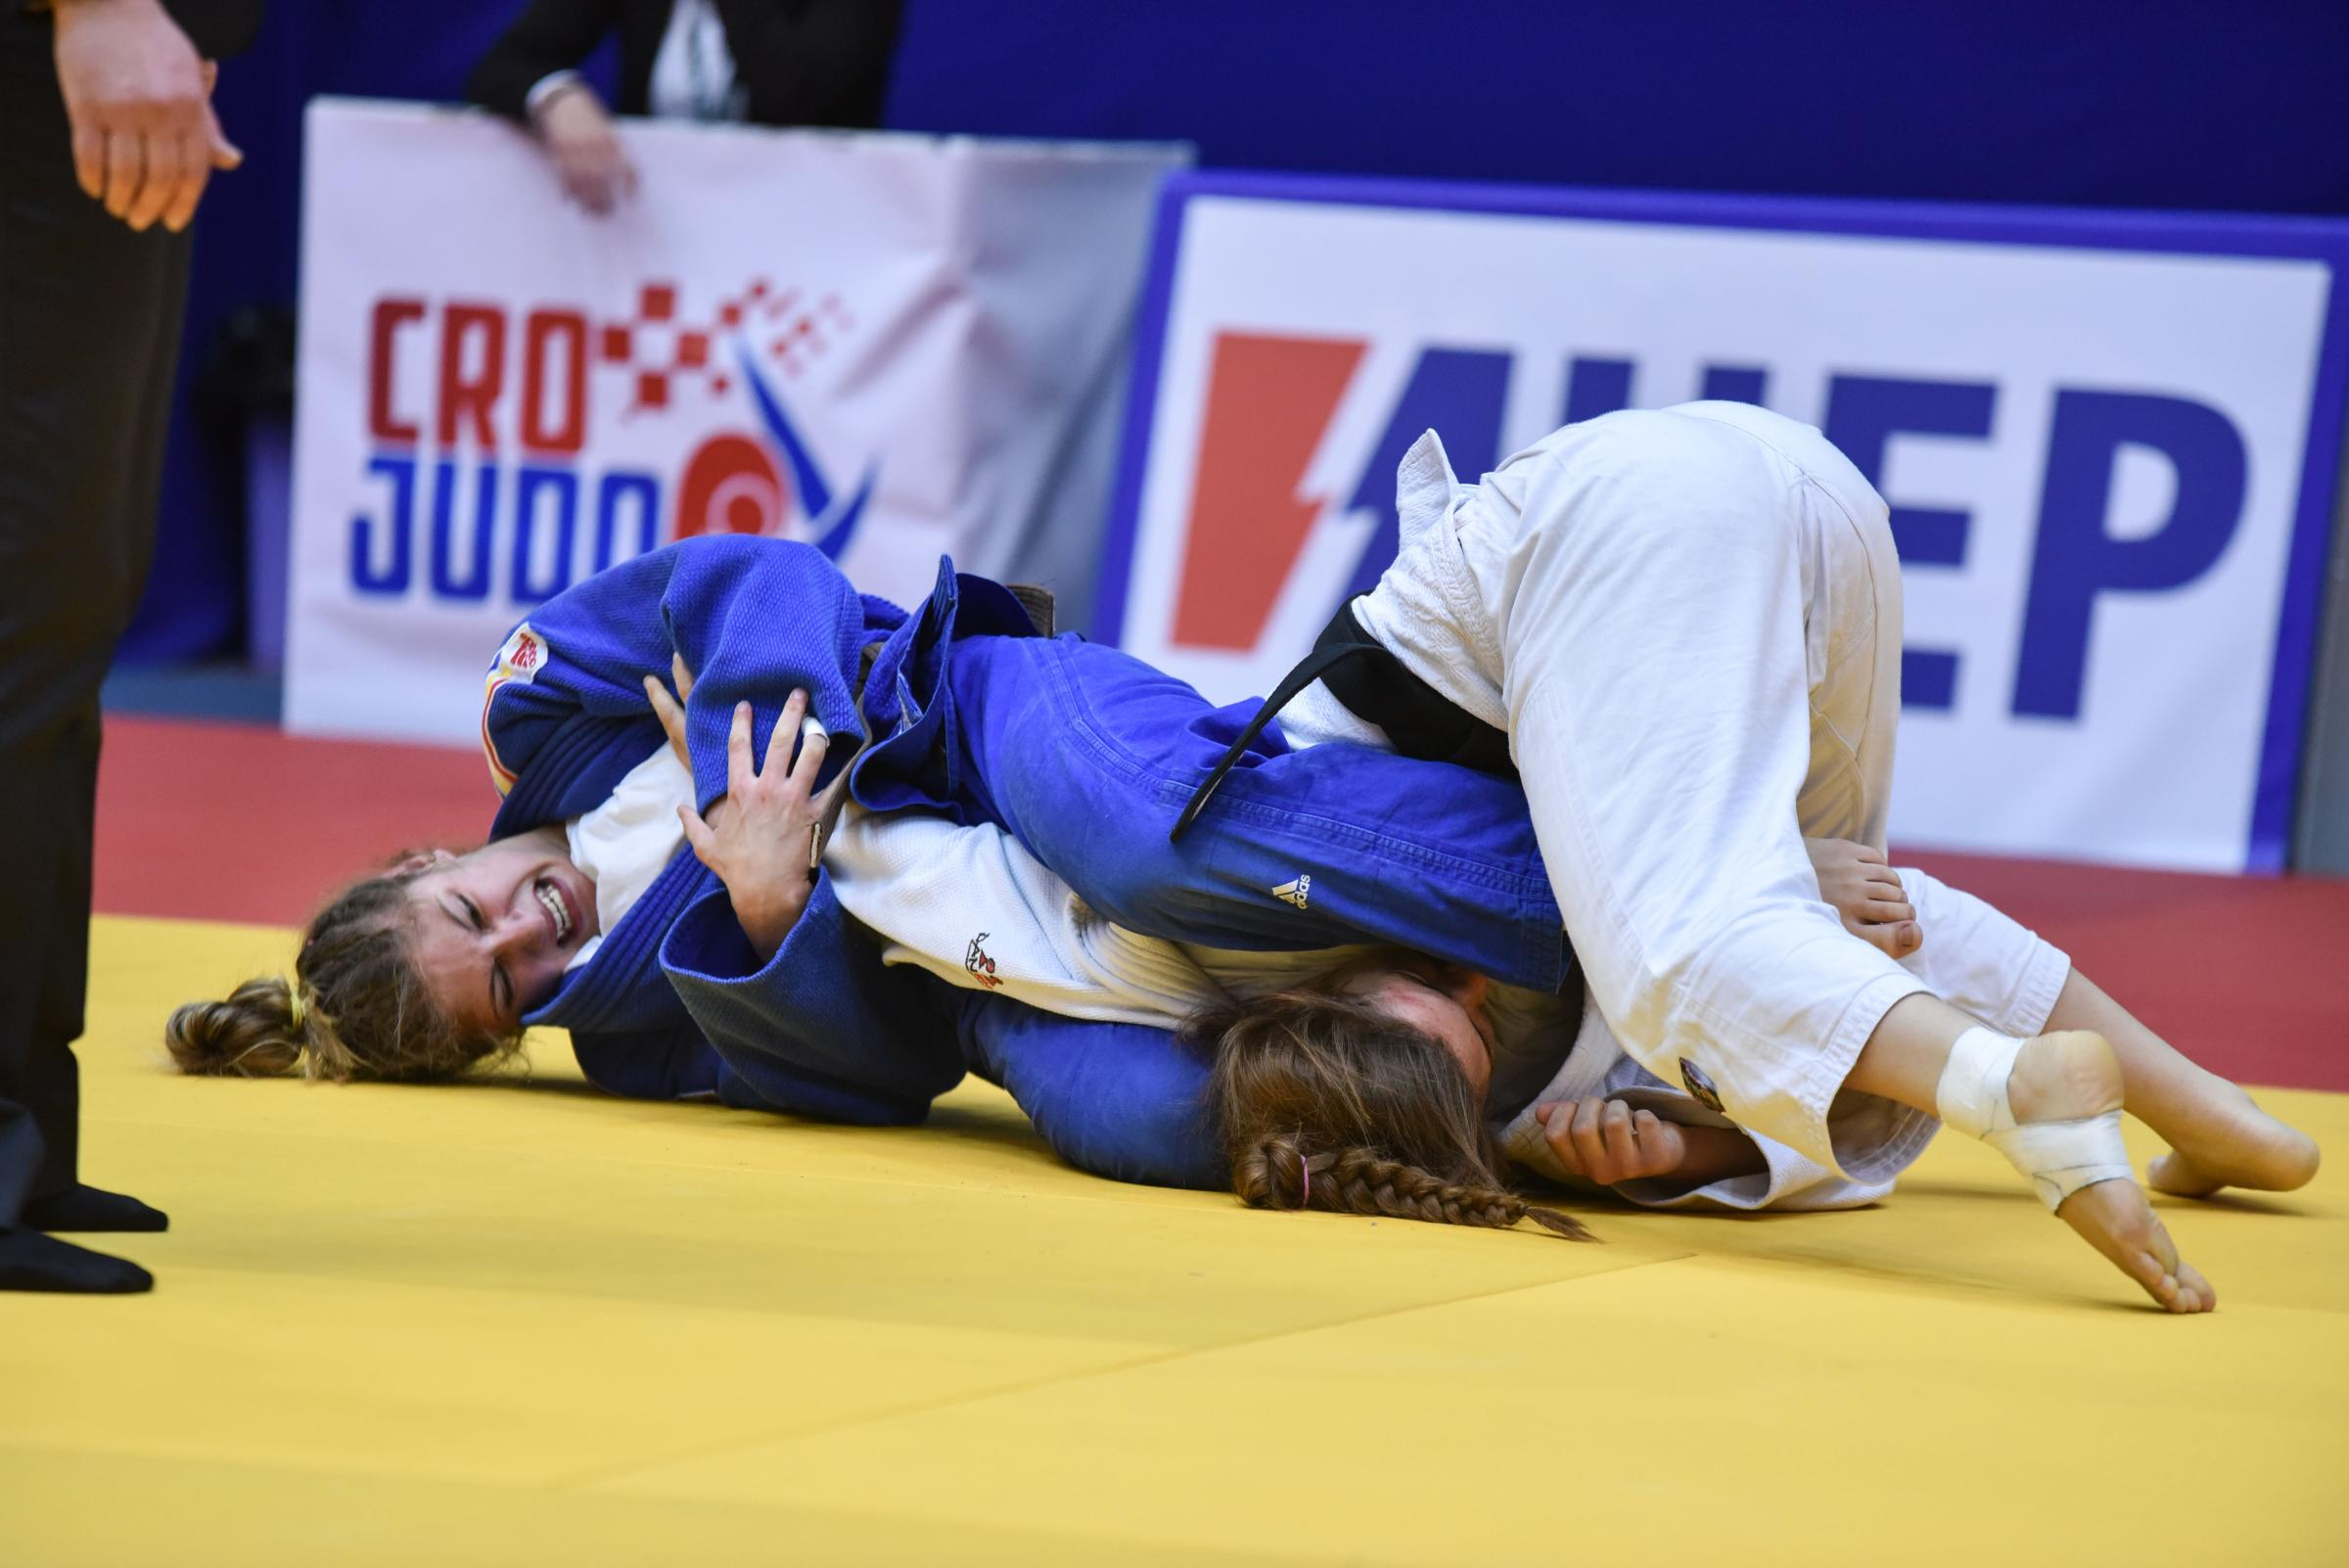 CROATIA TO WELCOME BACK ATHLETES FOR ZAGREB EUROPEAN OPEN